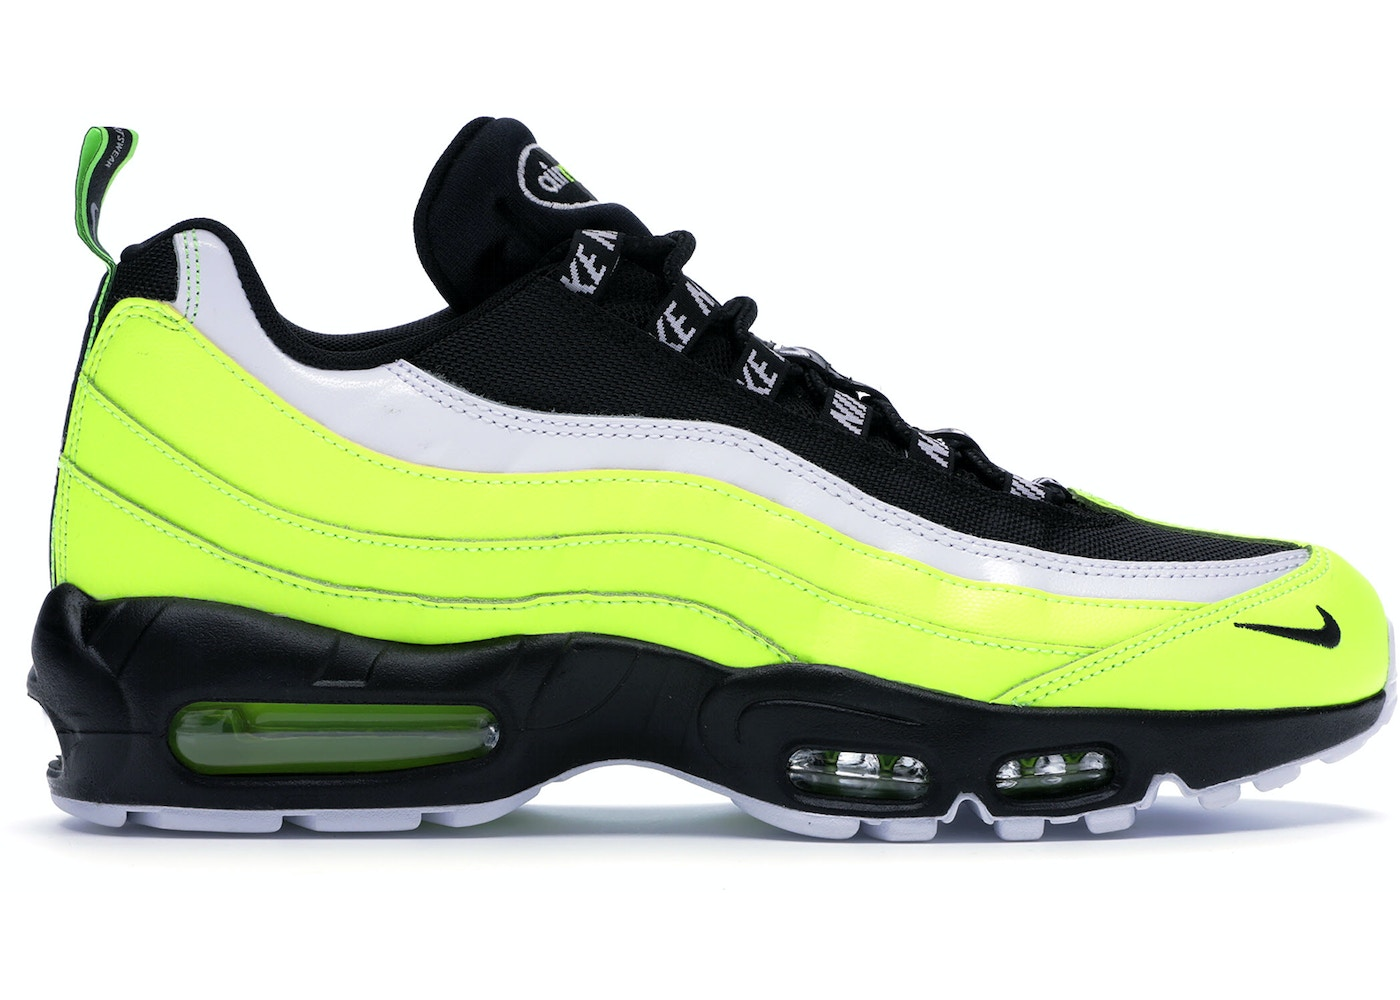 detailing 083ee e7bed Buy Nike Air Max 95 Shoes   Deadstock Sneakers